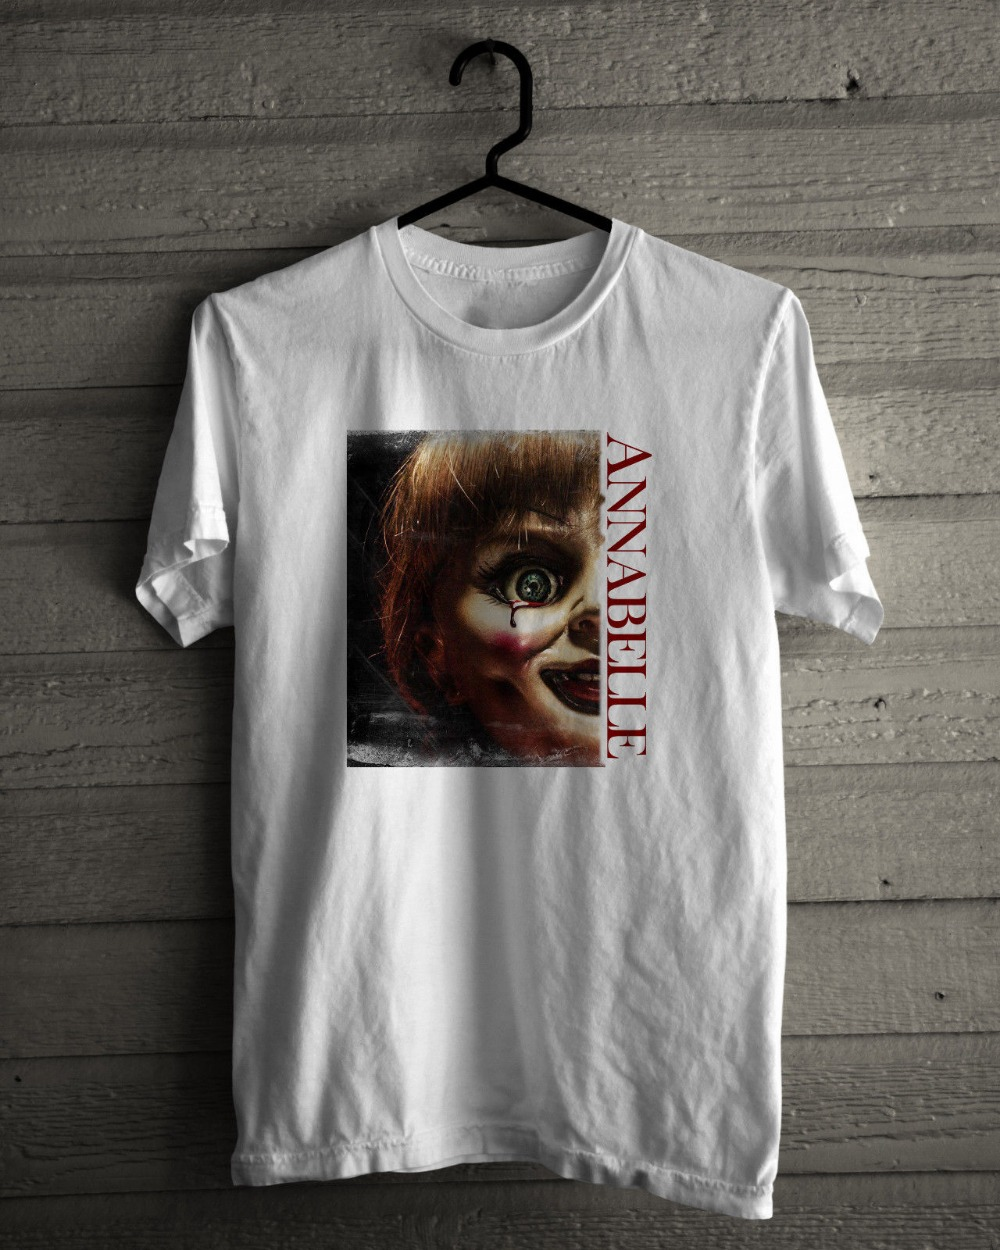 Creative Short Sleeve Trend Lady Gaga Bitch Th Black 2013 Canceled Na Tour New Rare Zomer Short Sleeve T Shirts For Men